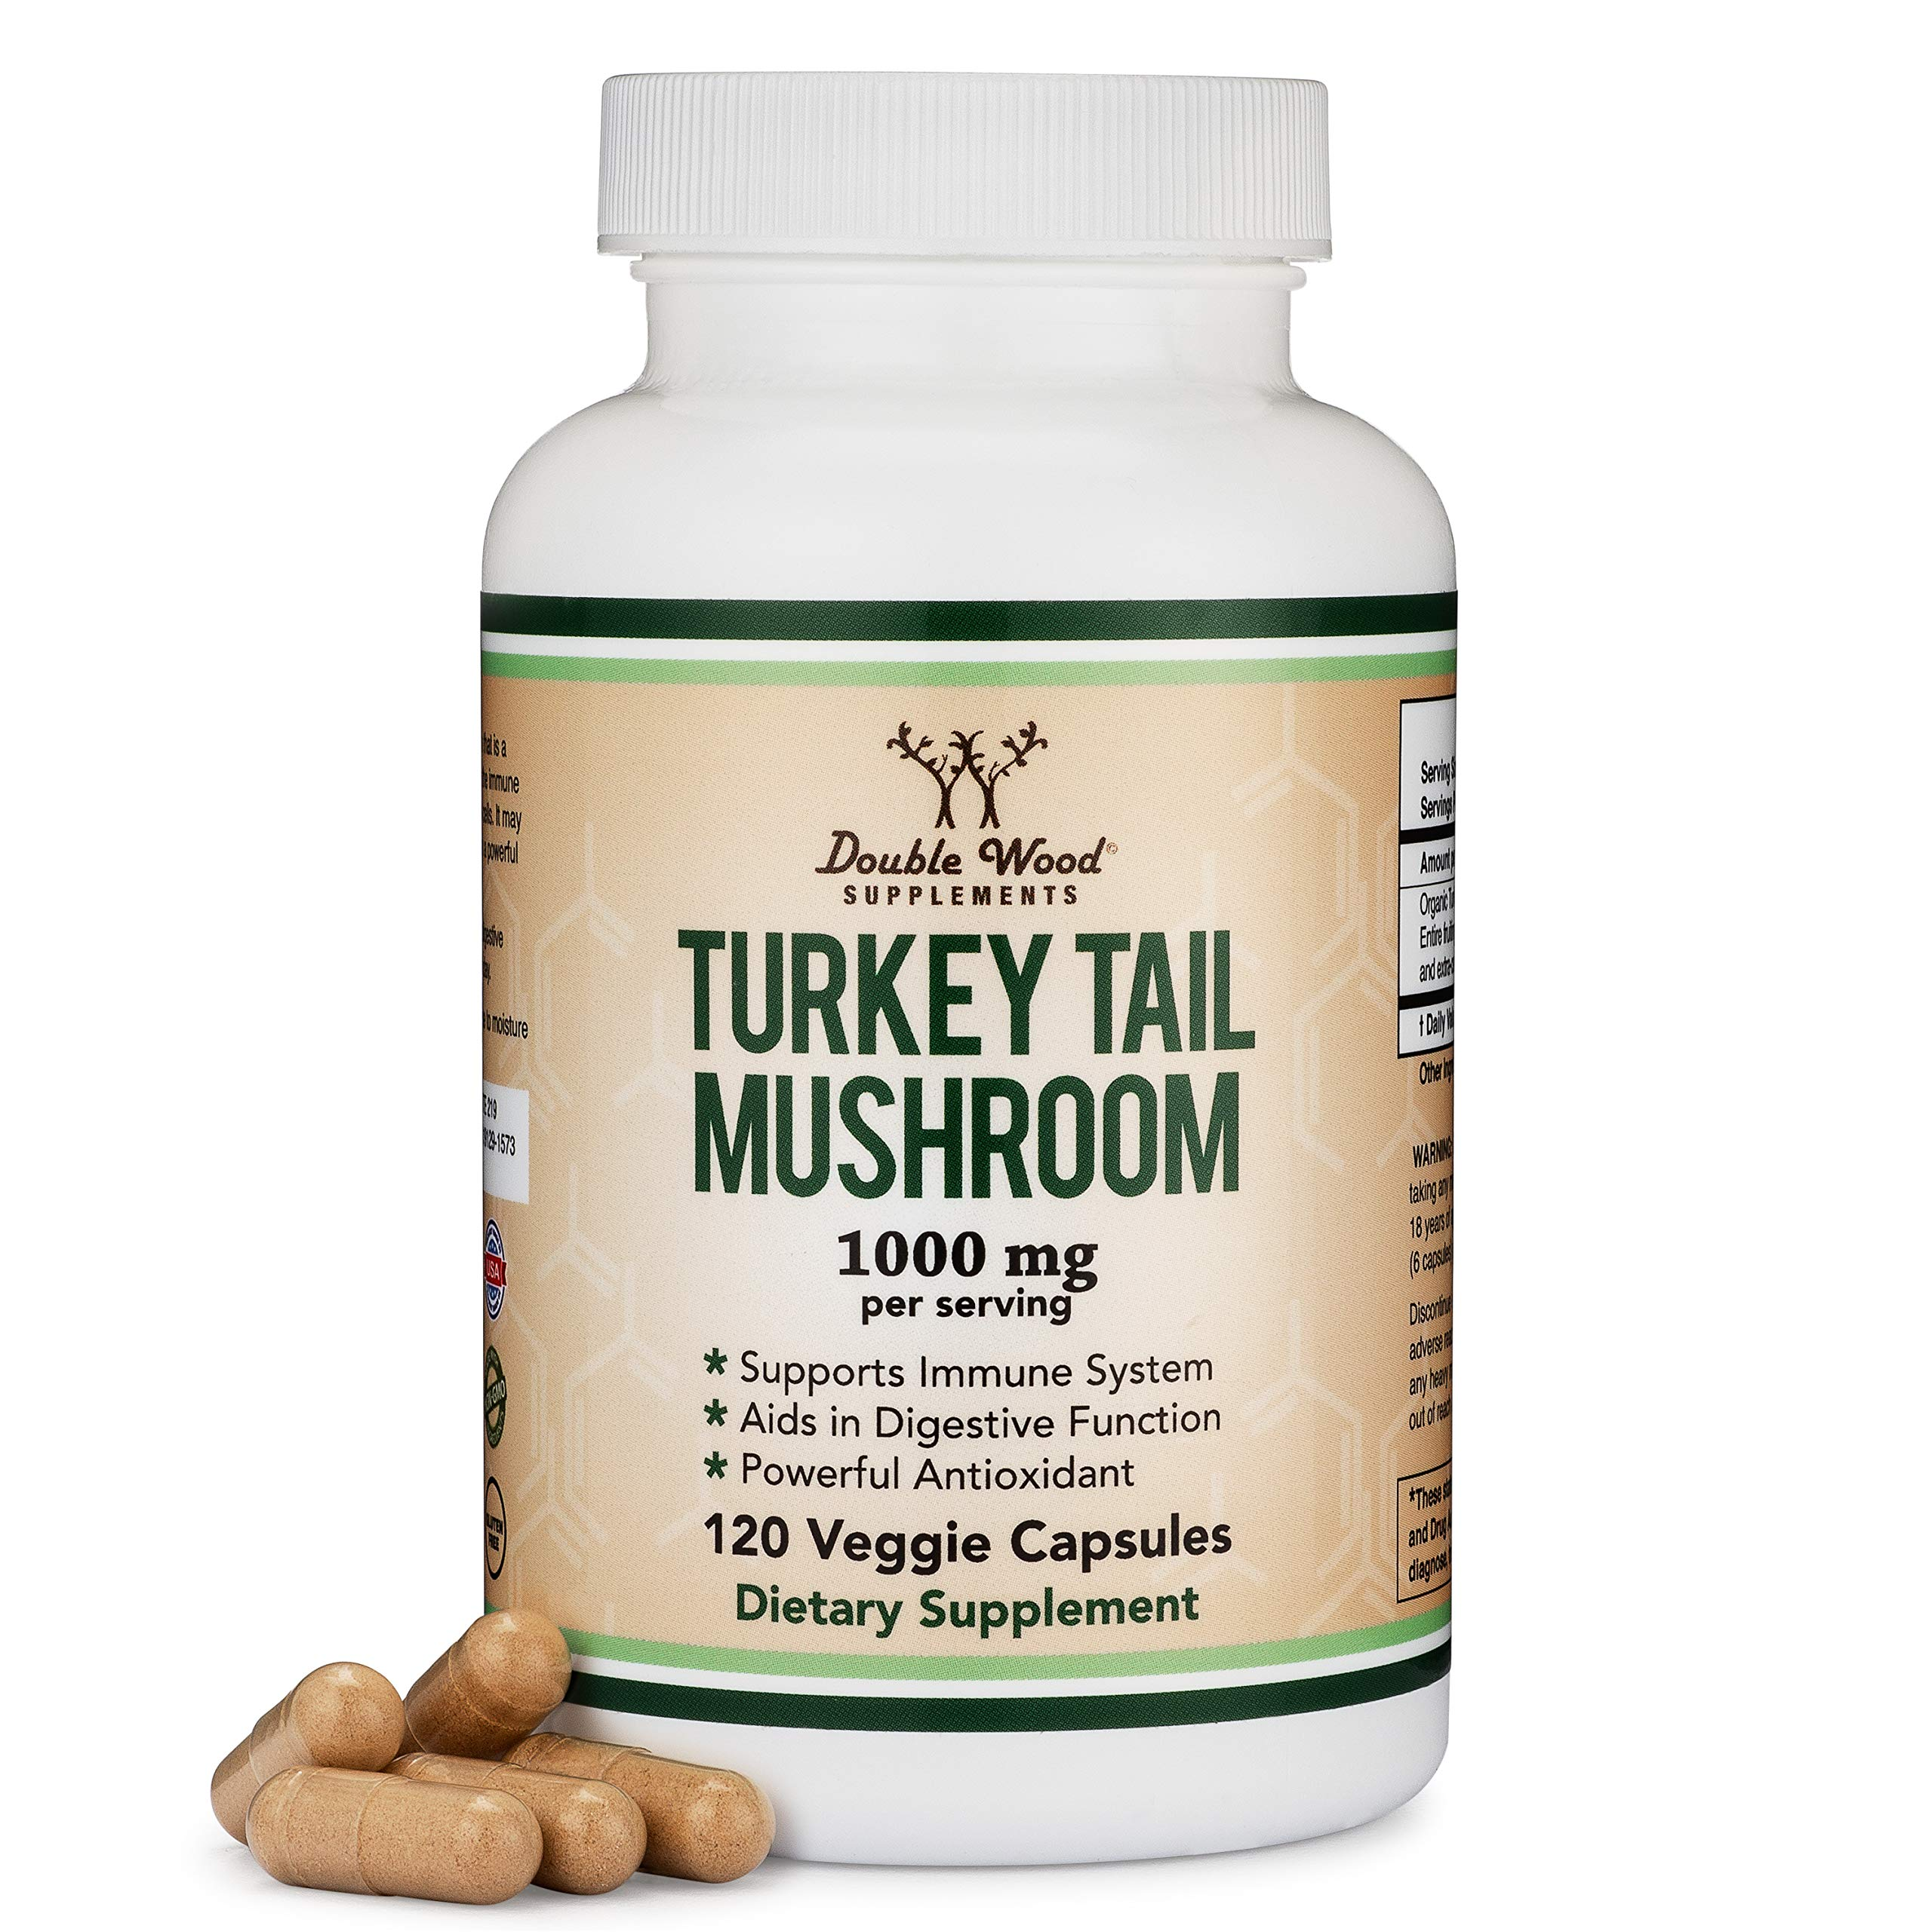 Turkey Tail Mushroom Supplement (120 Capsules - 2 Month Supply) (Coriolus Versicolor) Comprehensive Immune System Support, Non-GMO, Gluten Free, Made in The USA by Double Wood Supplements